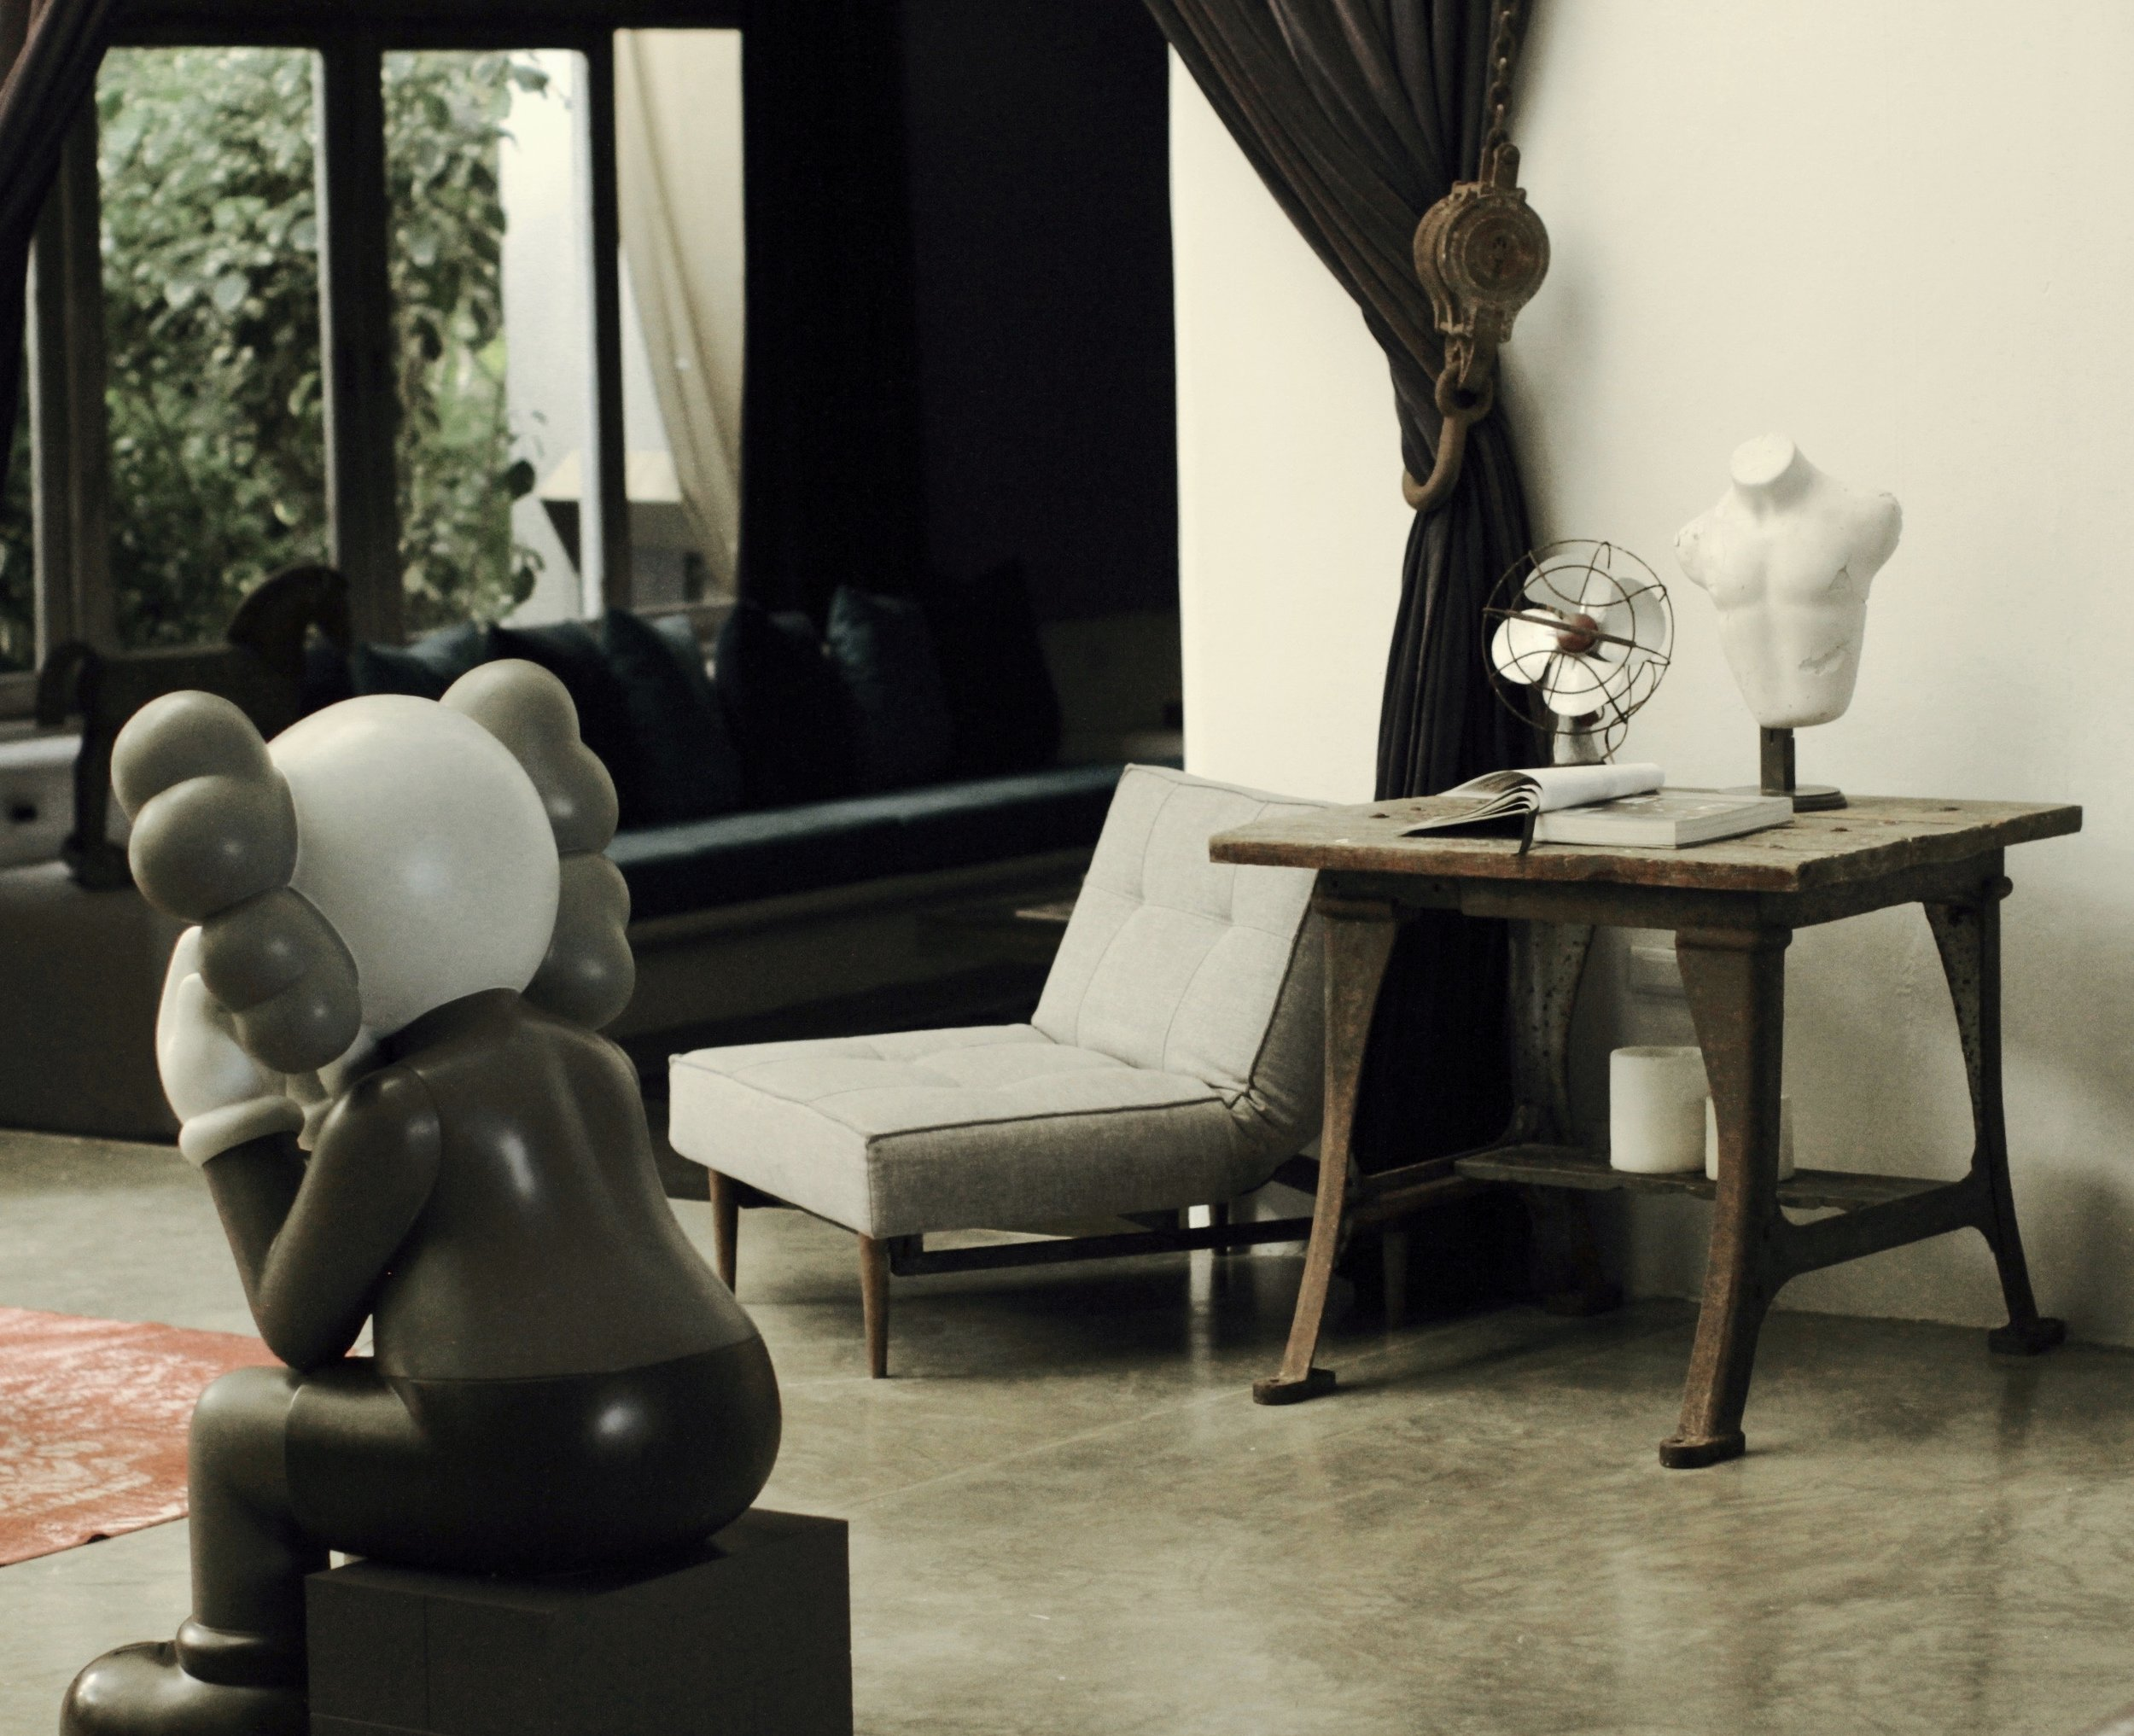 KAWS in living room/reception at Casa Malca